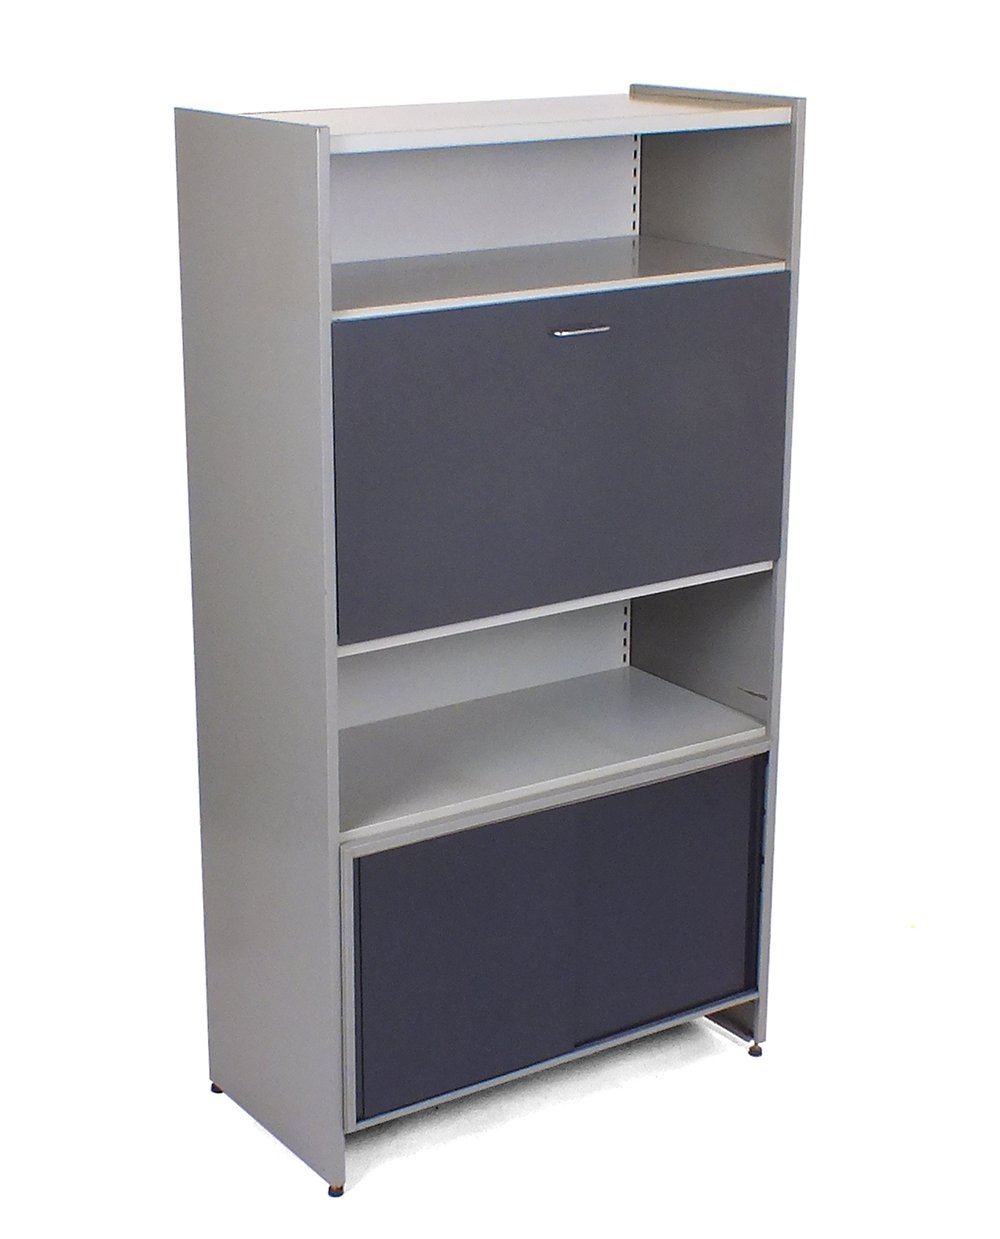 Model 5600 Gispen cabinet by André Cordemeyer & L. Holleman